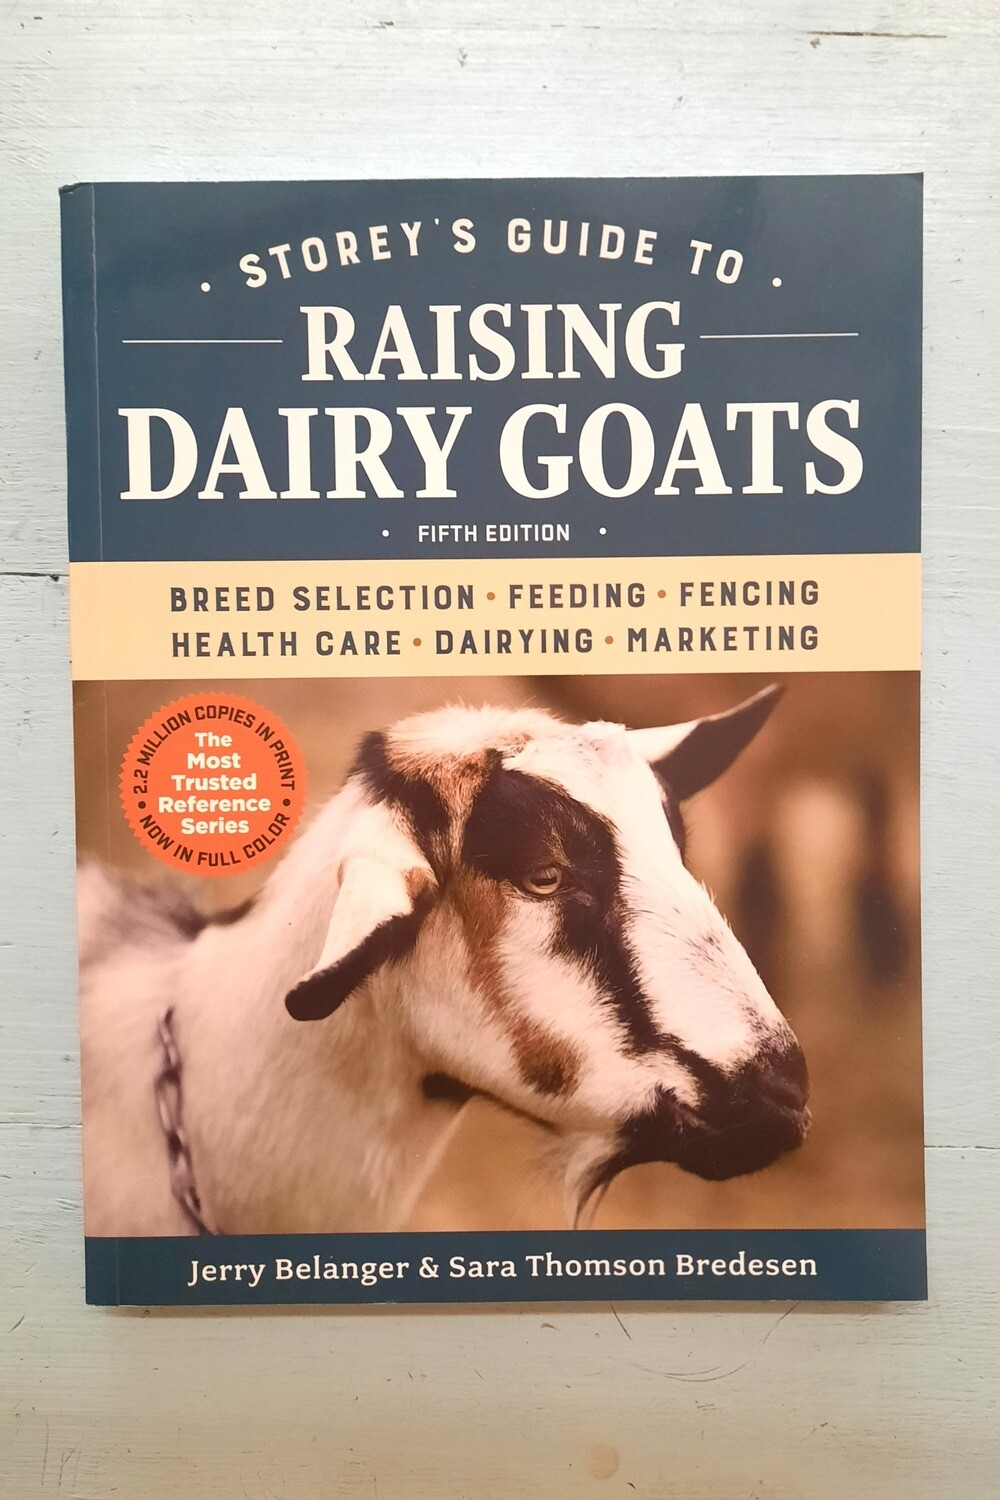 Storey's Guide to Raising Dairy Goats, by Jerry Belanger and Sara Bredesen